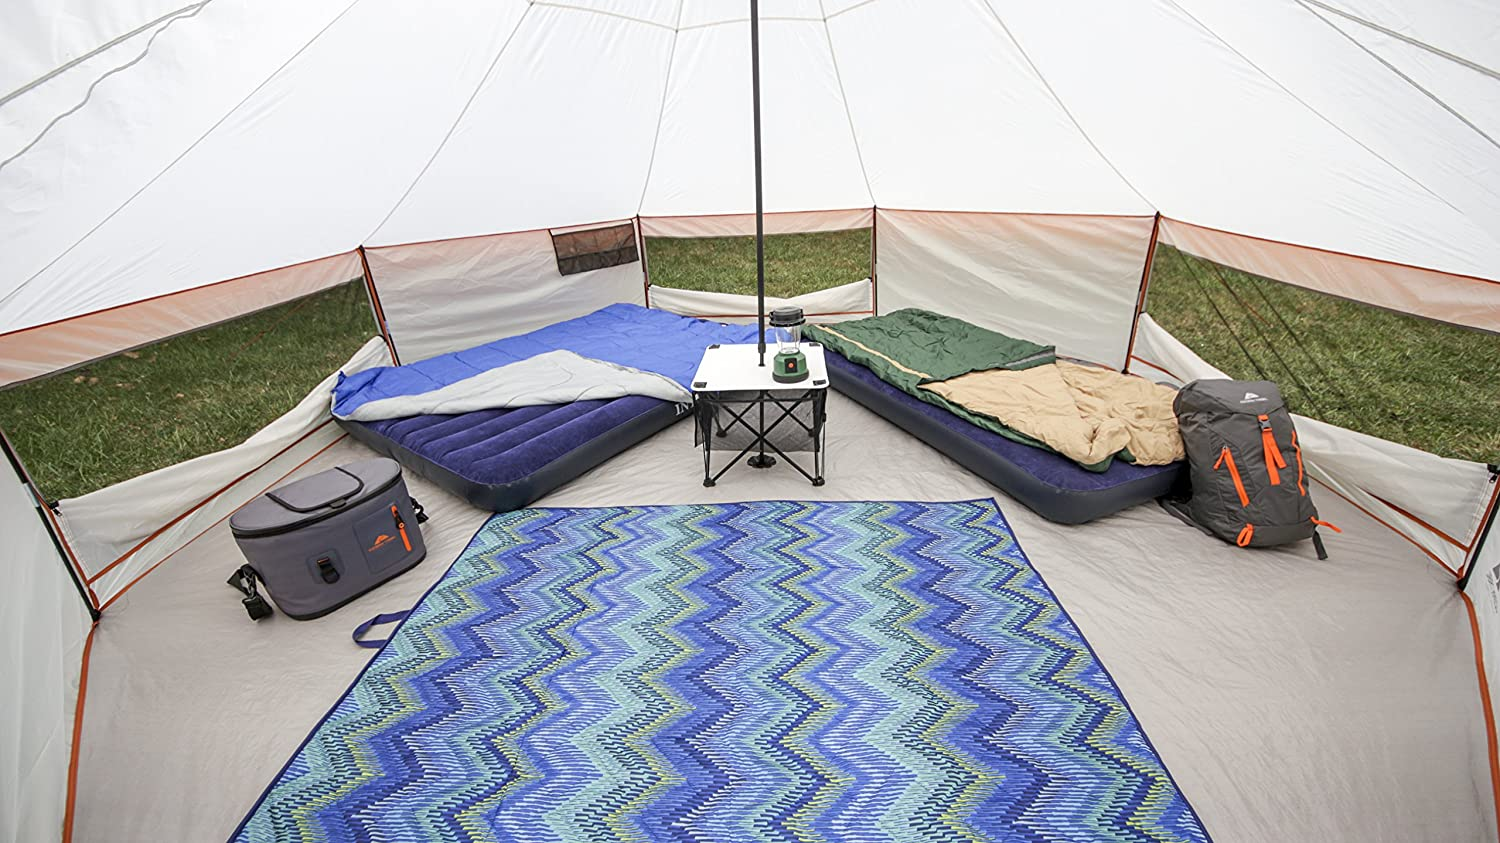 Best Yurt Tents For Camping Sleeping With Air Free delivery and free returns on ebay plus items! best yurt tents for camping sleeping